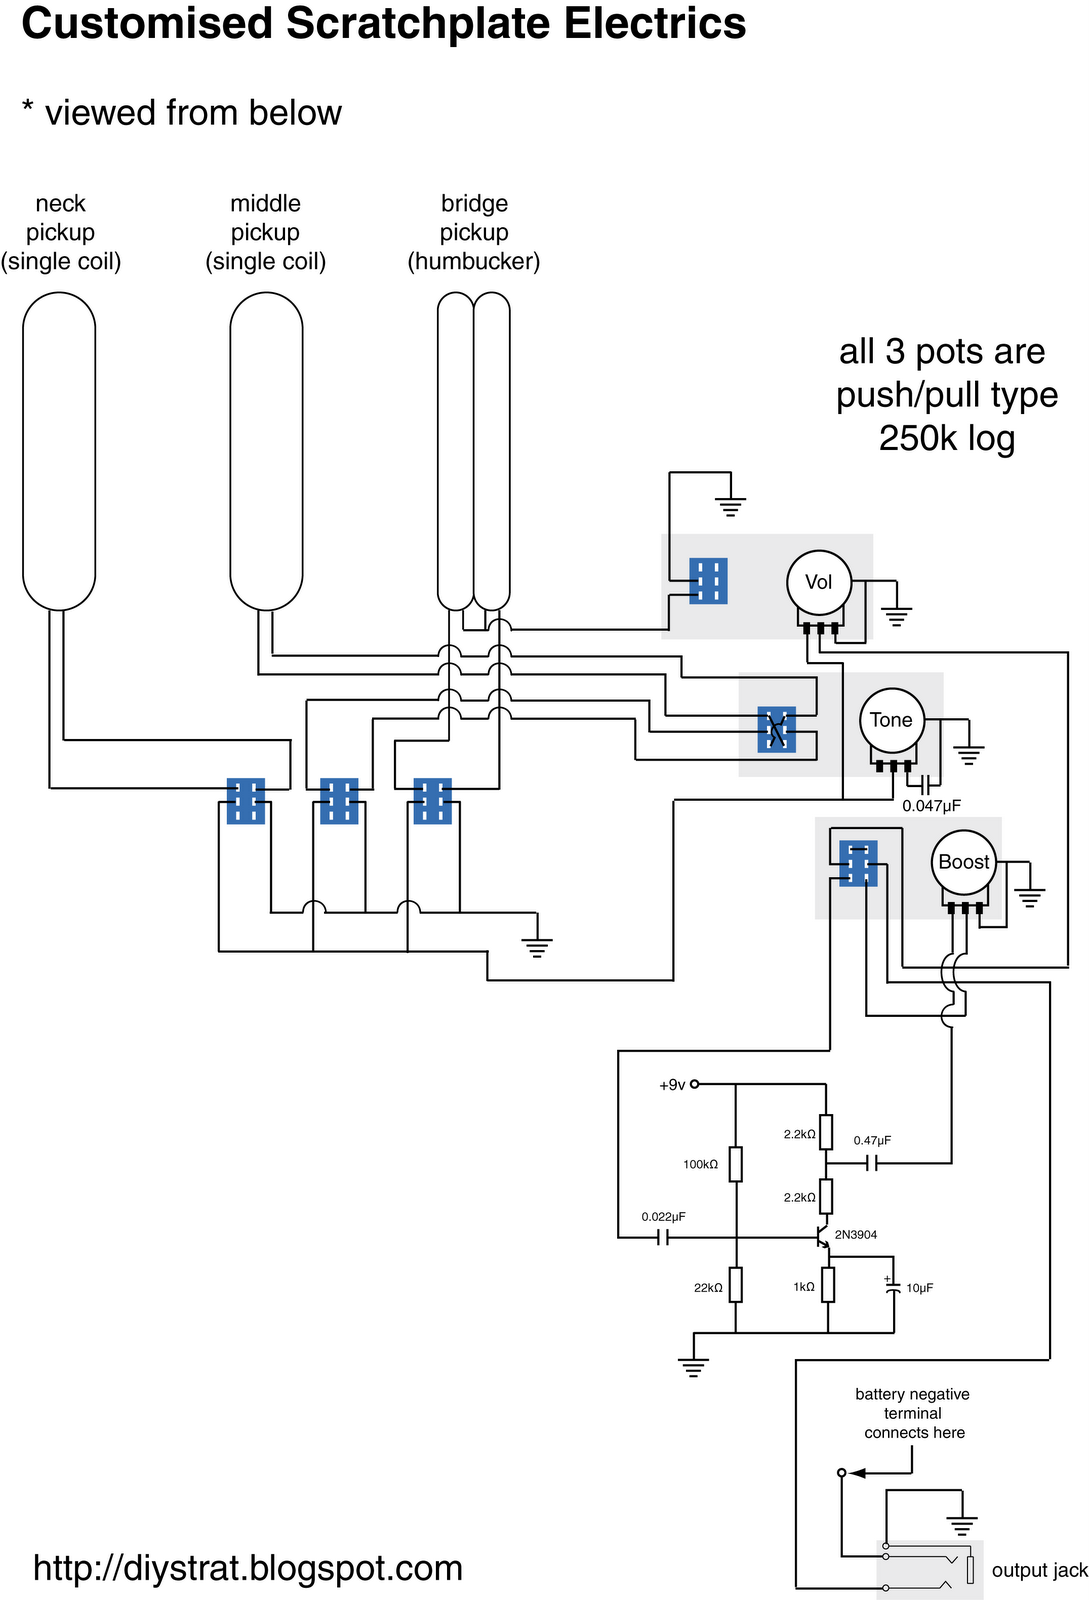 guitar output jack wiring diagram goodman heat pump package unit the electrics part two diy strat and other